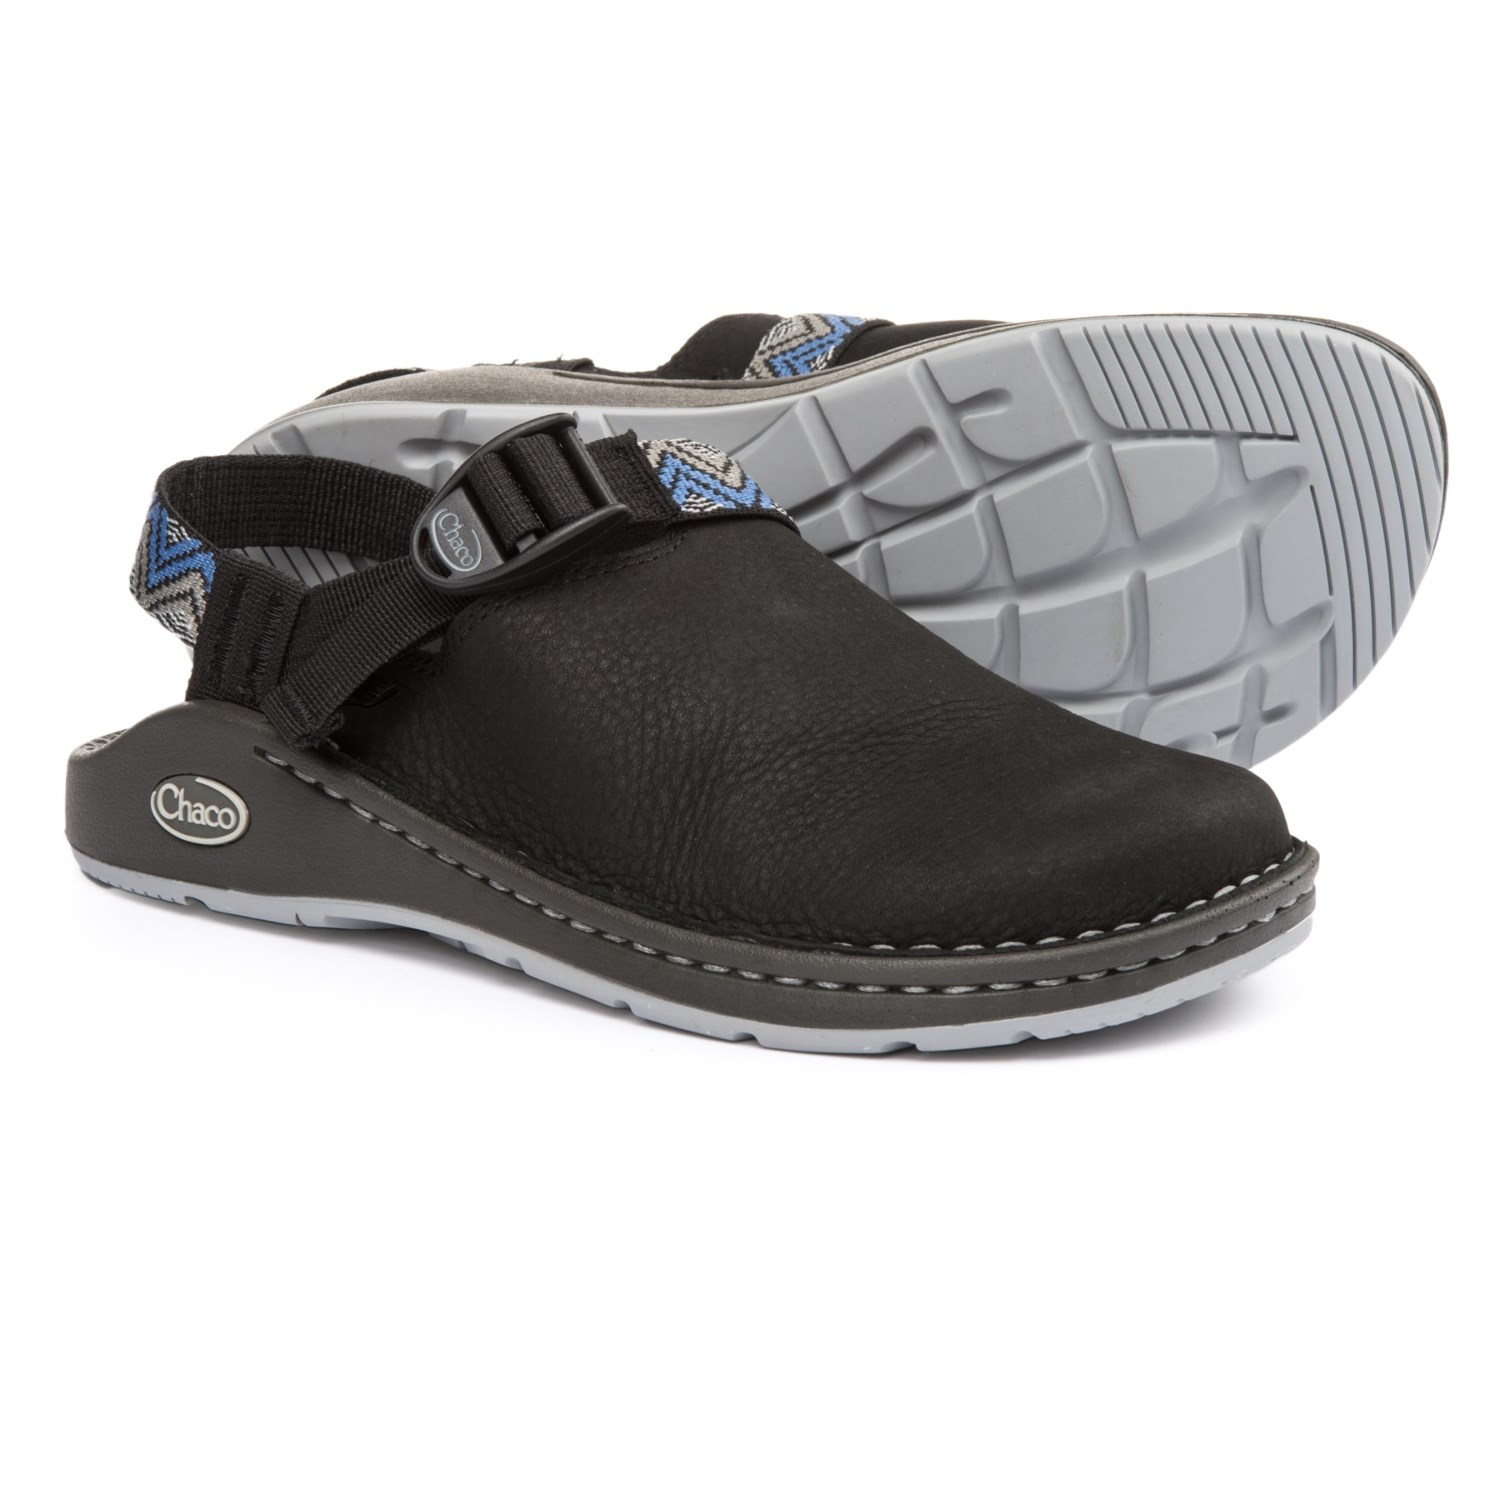 Chaco Toecoop Shoes Leather Slip Ons For Women In Black